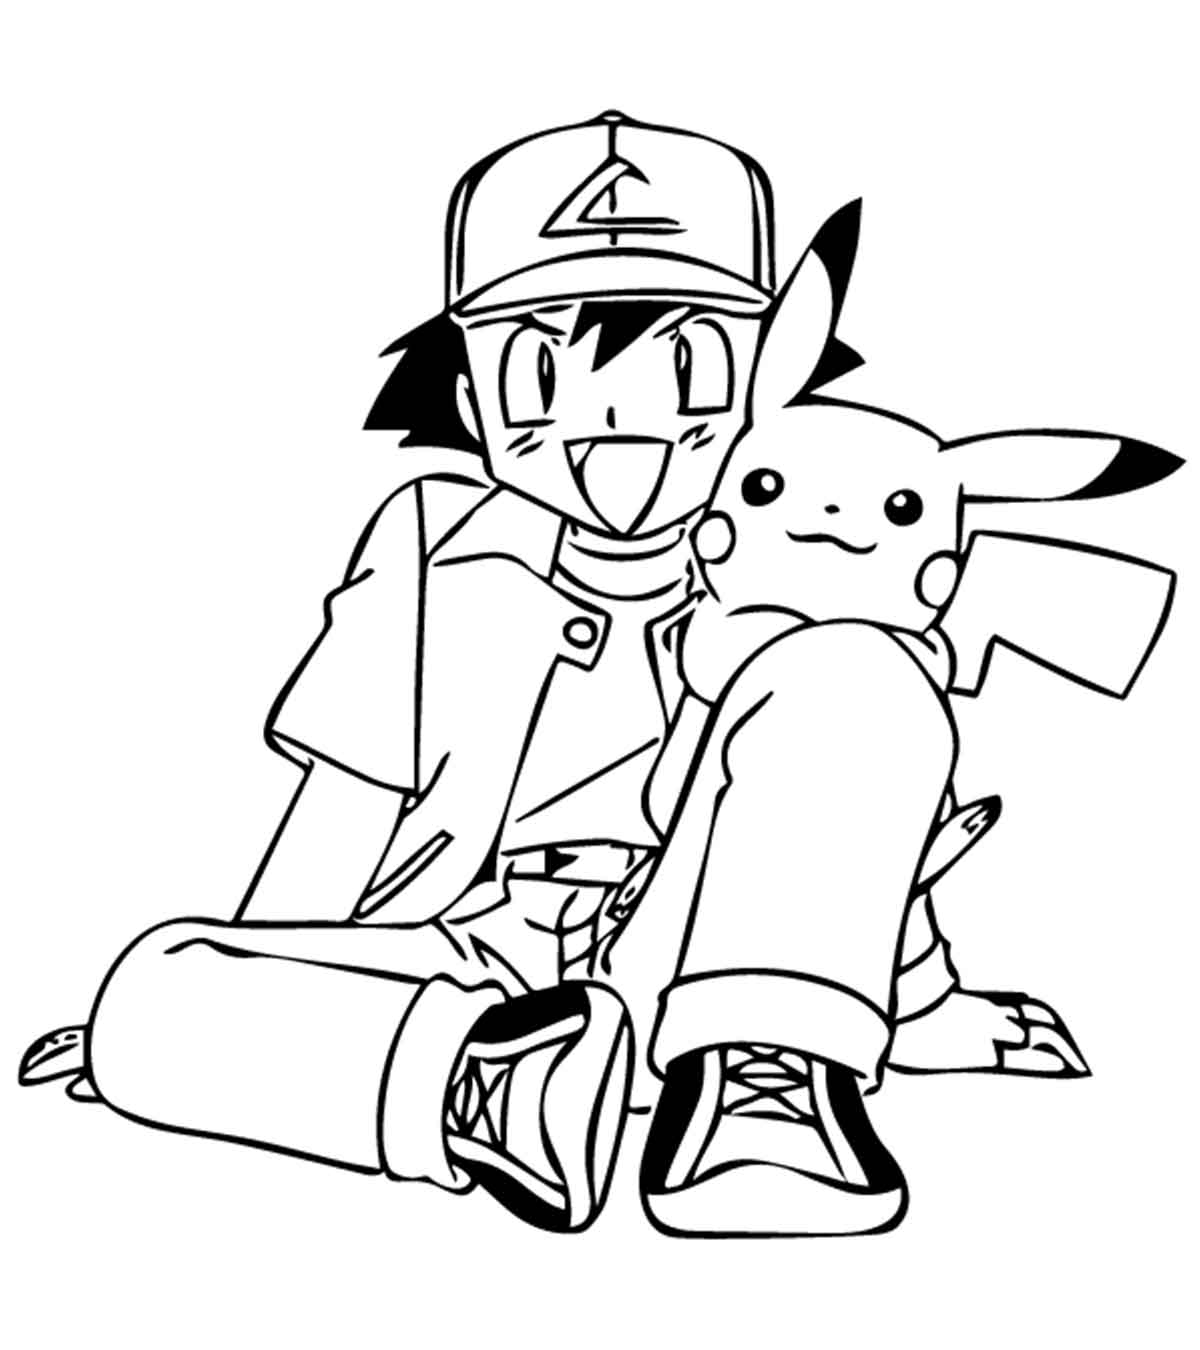 Pokemon Coloring Pages 89 | Dibujos para colorear pokemon, Dibujos ... | 1350x1200